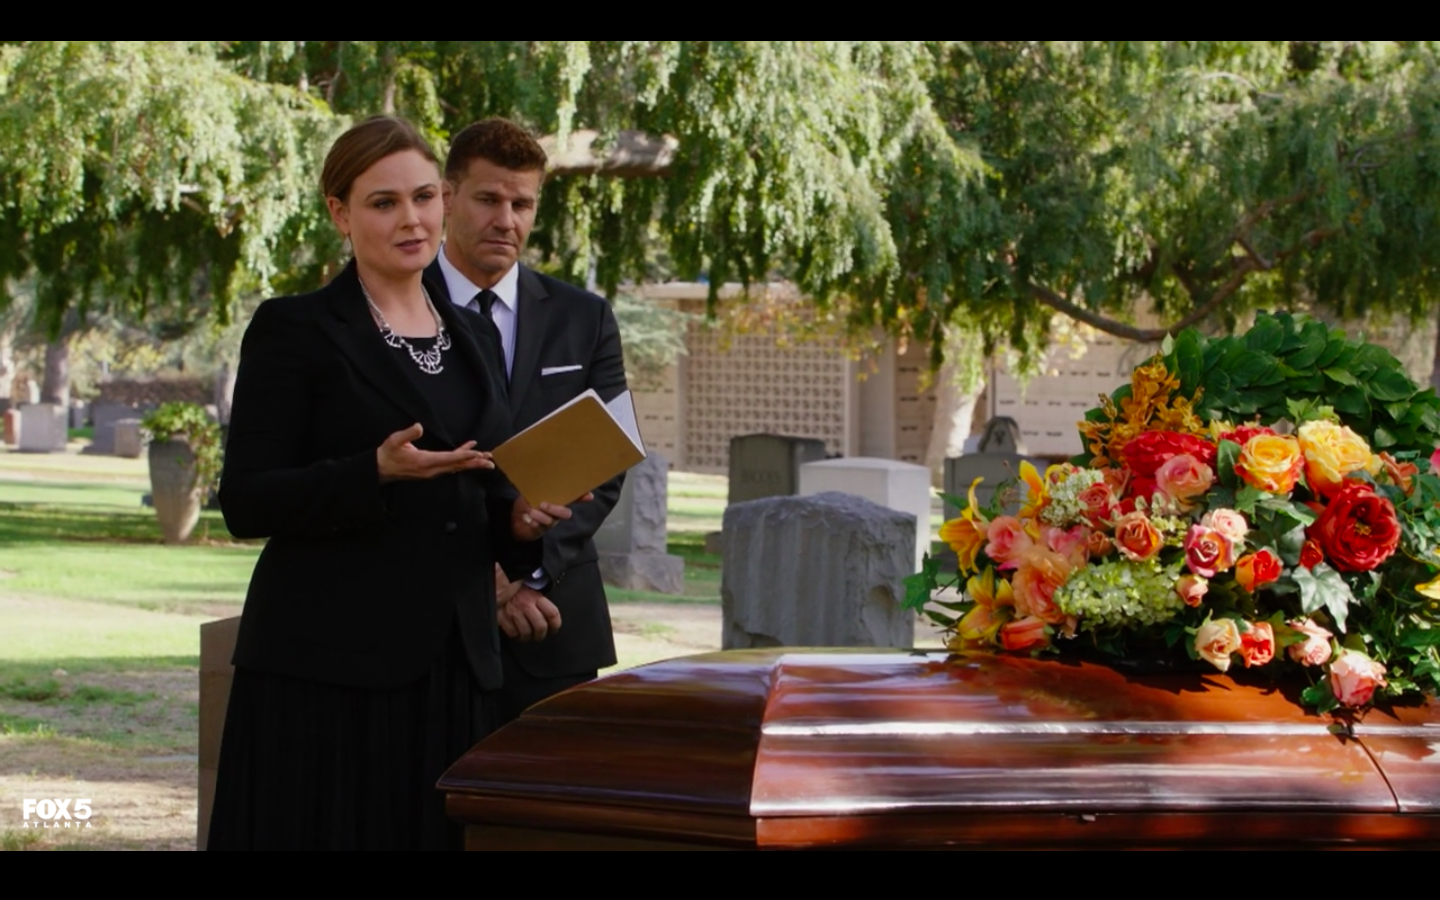 Bones - The Grief and the Girl - Review